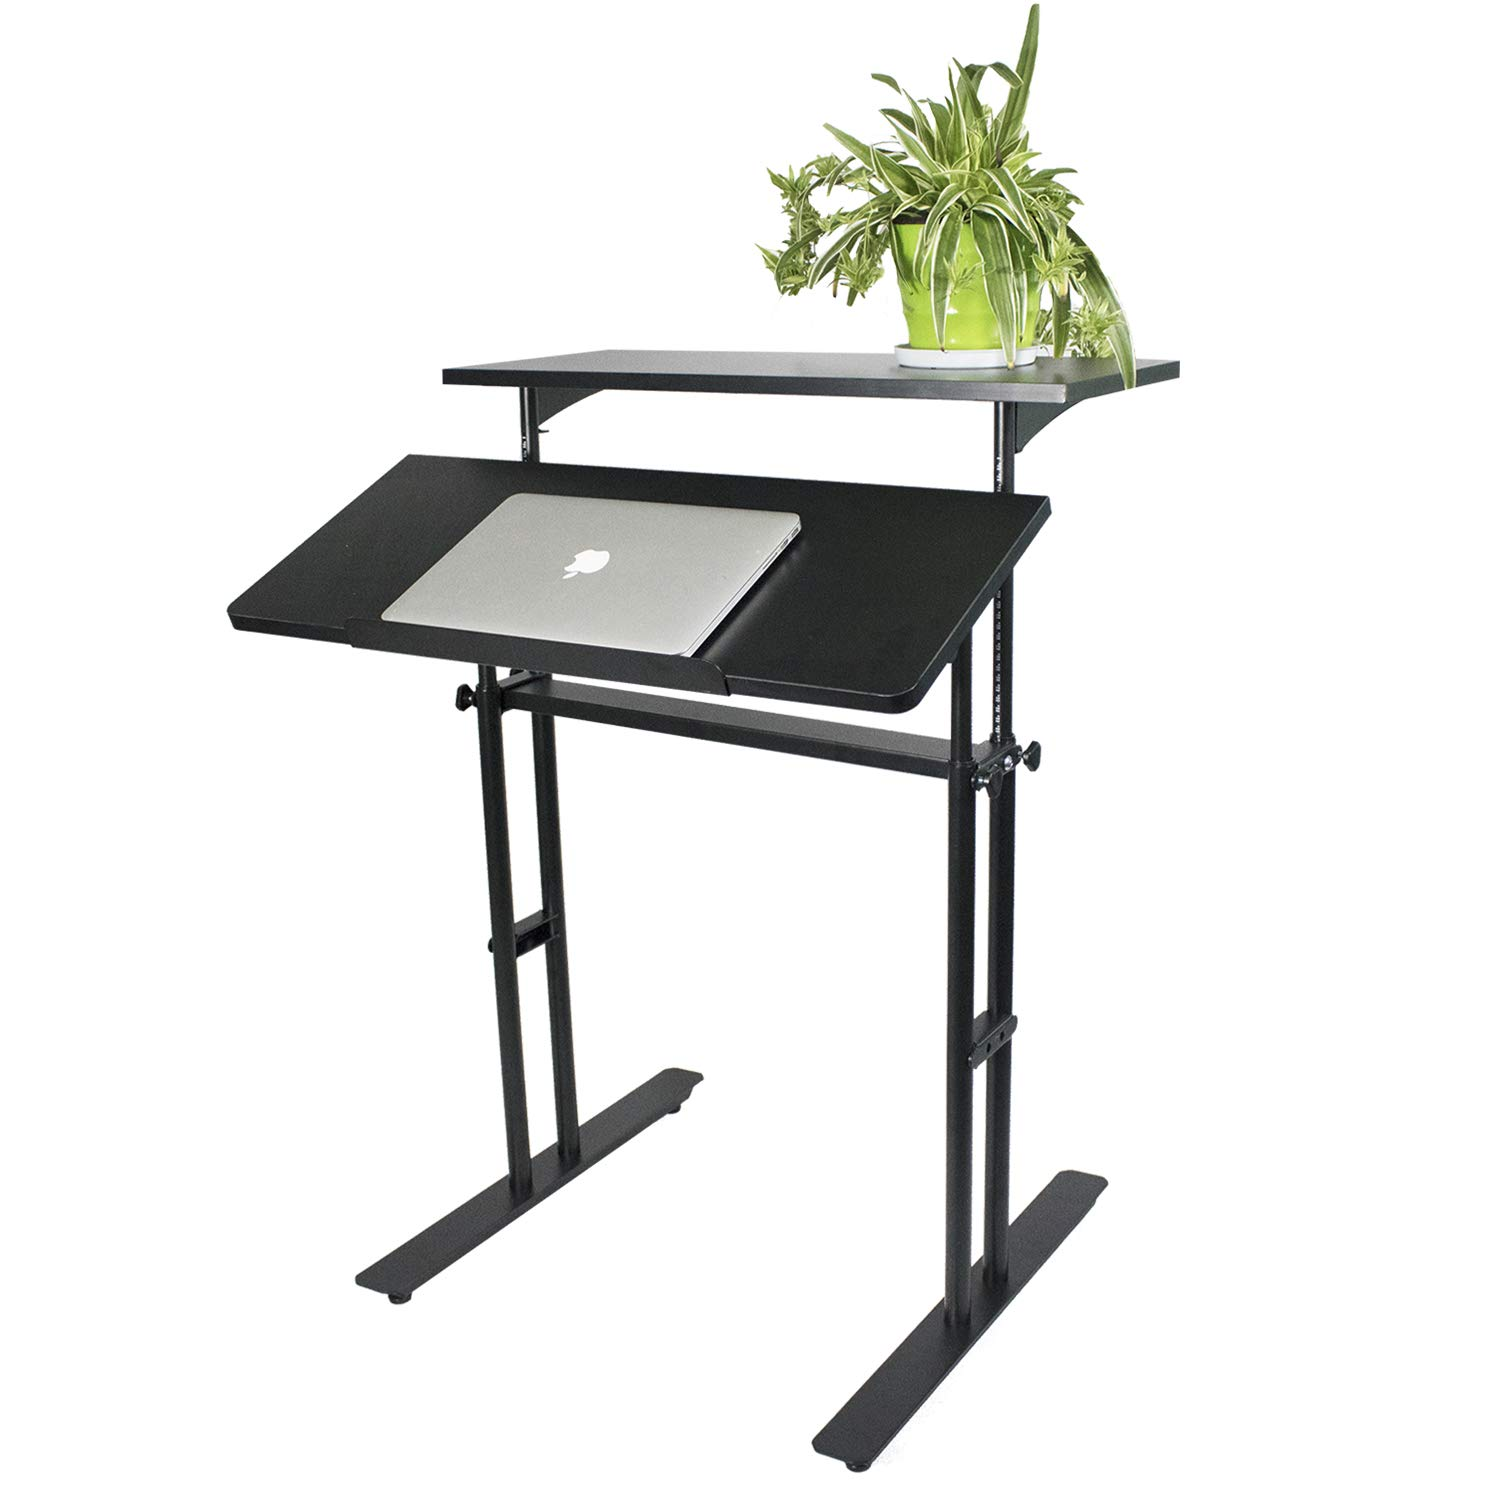 Heyesk Stand Up Desk Height Adjustable Home Office Desk with Standing (Black) by heyesk (Image #7)